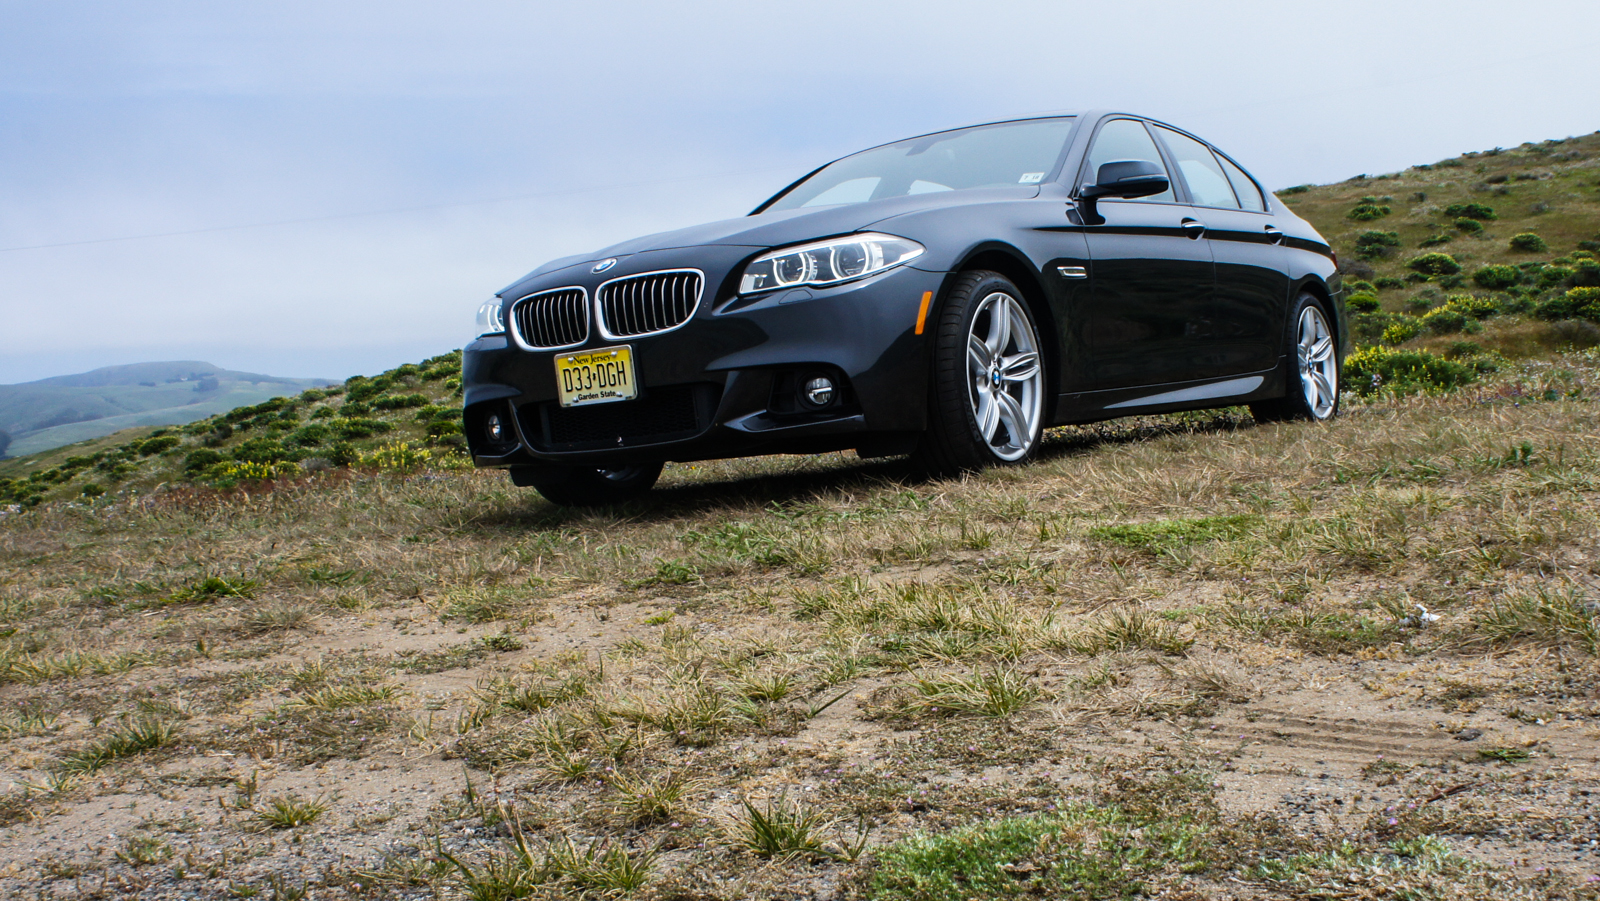 BMW 535d xDrive: Proves diesels can be sport drivers